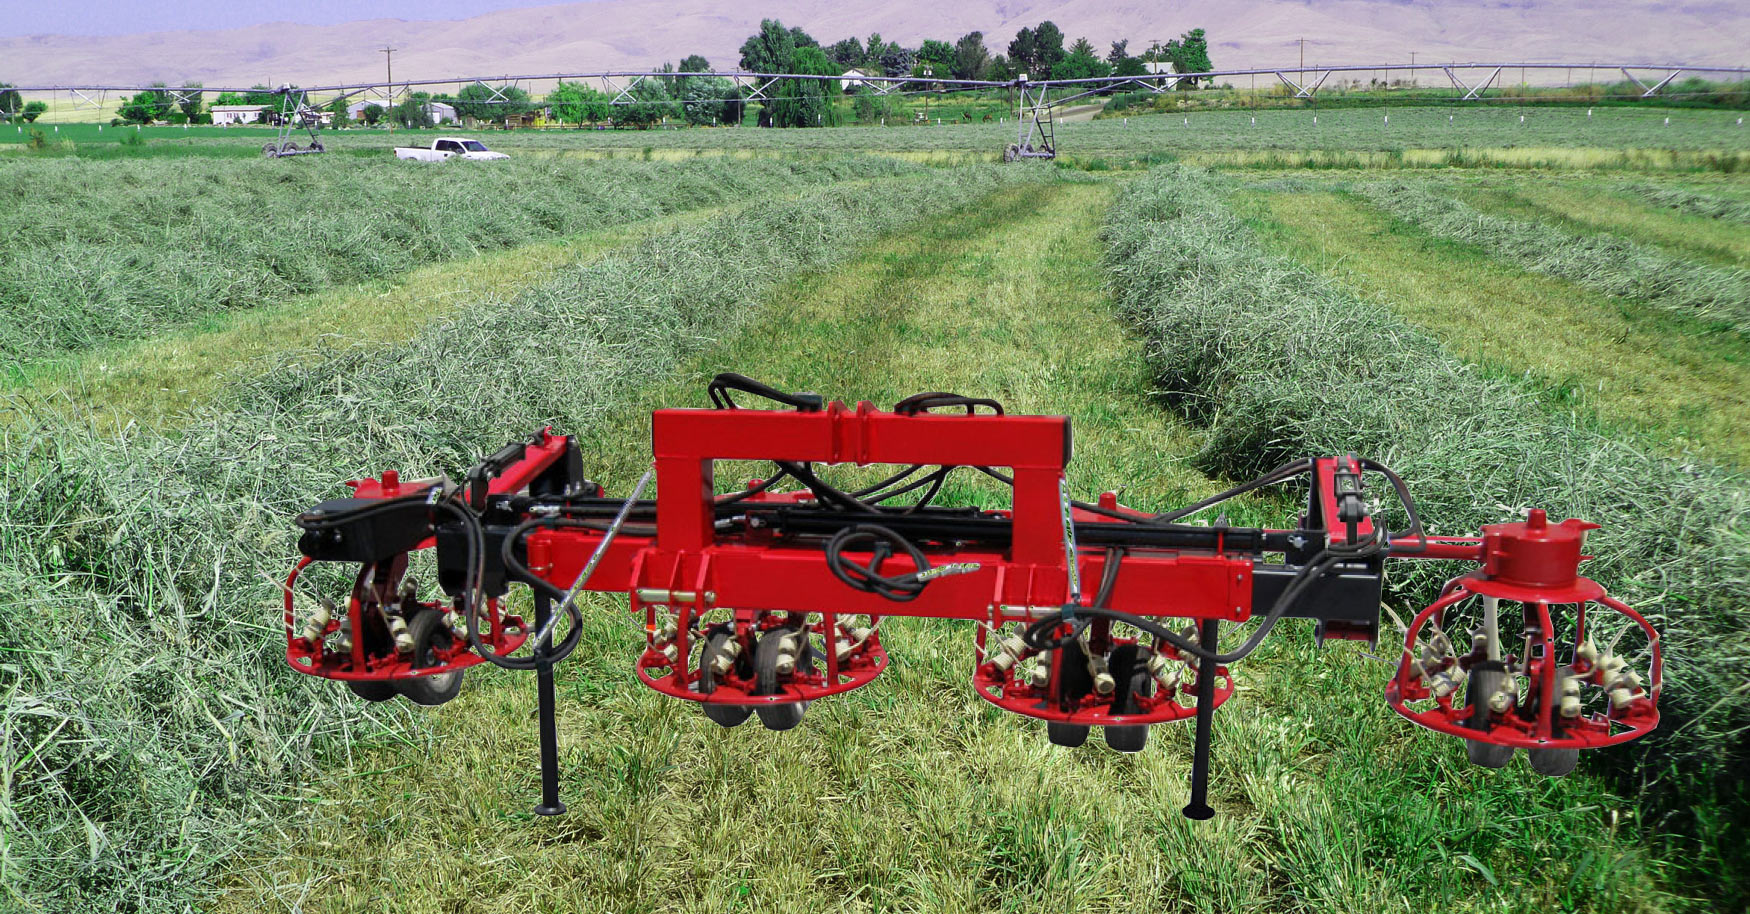 Twin-Tach Hay Tedder Carrier | Northstar Attachments